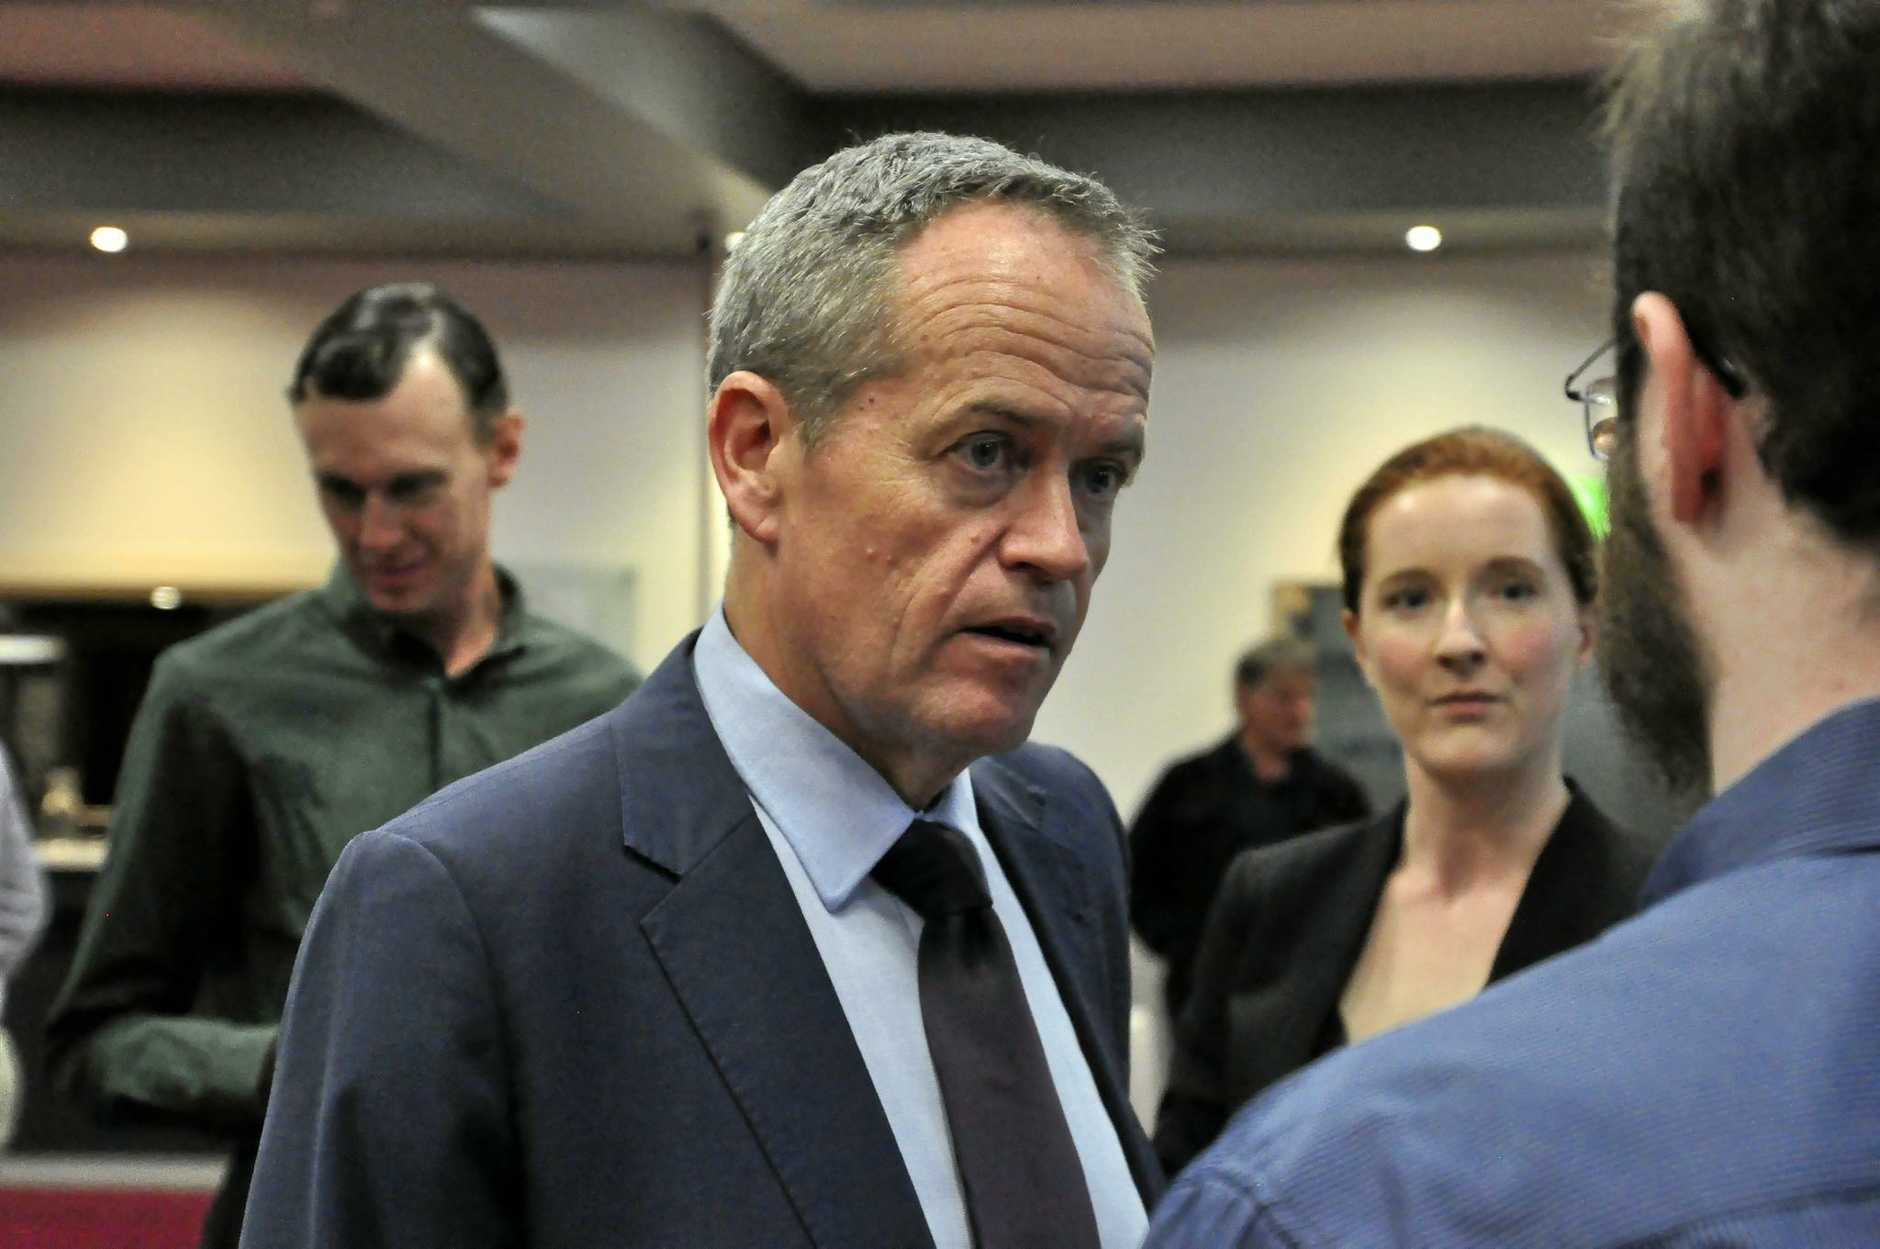 Bill Shorten attends a community forum in Rockhampton on August 15, 2016. Jobs, Visa workers, childcare and the NBN were at the forefront of the issues discussed on the night.